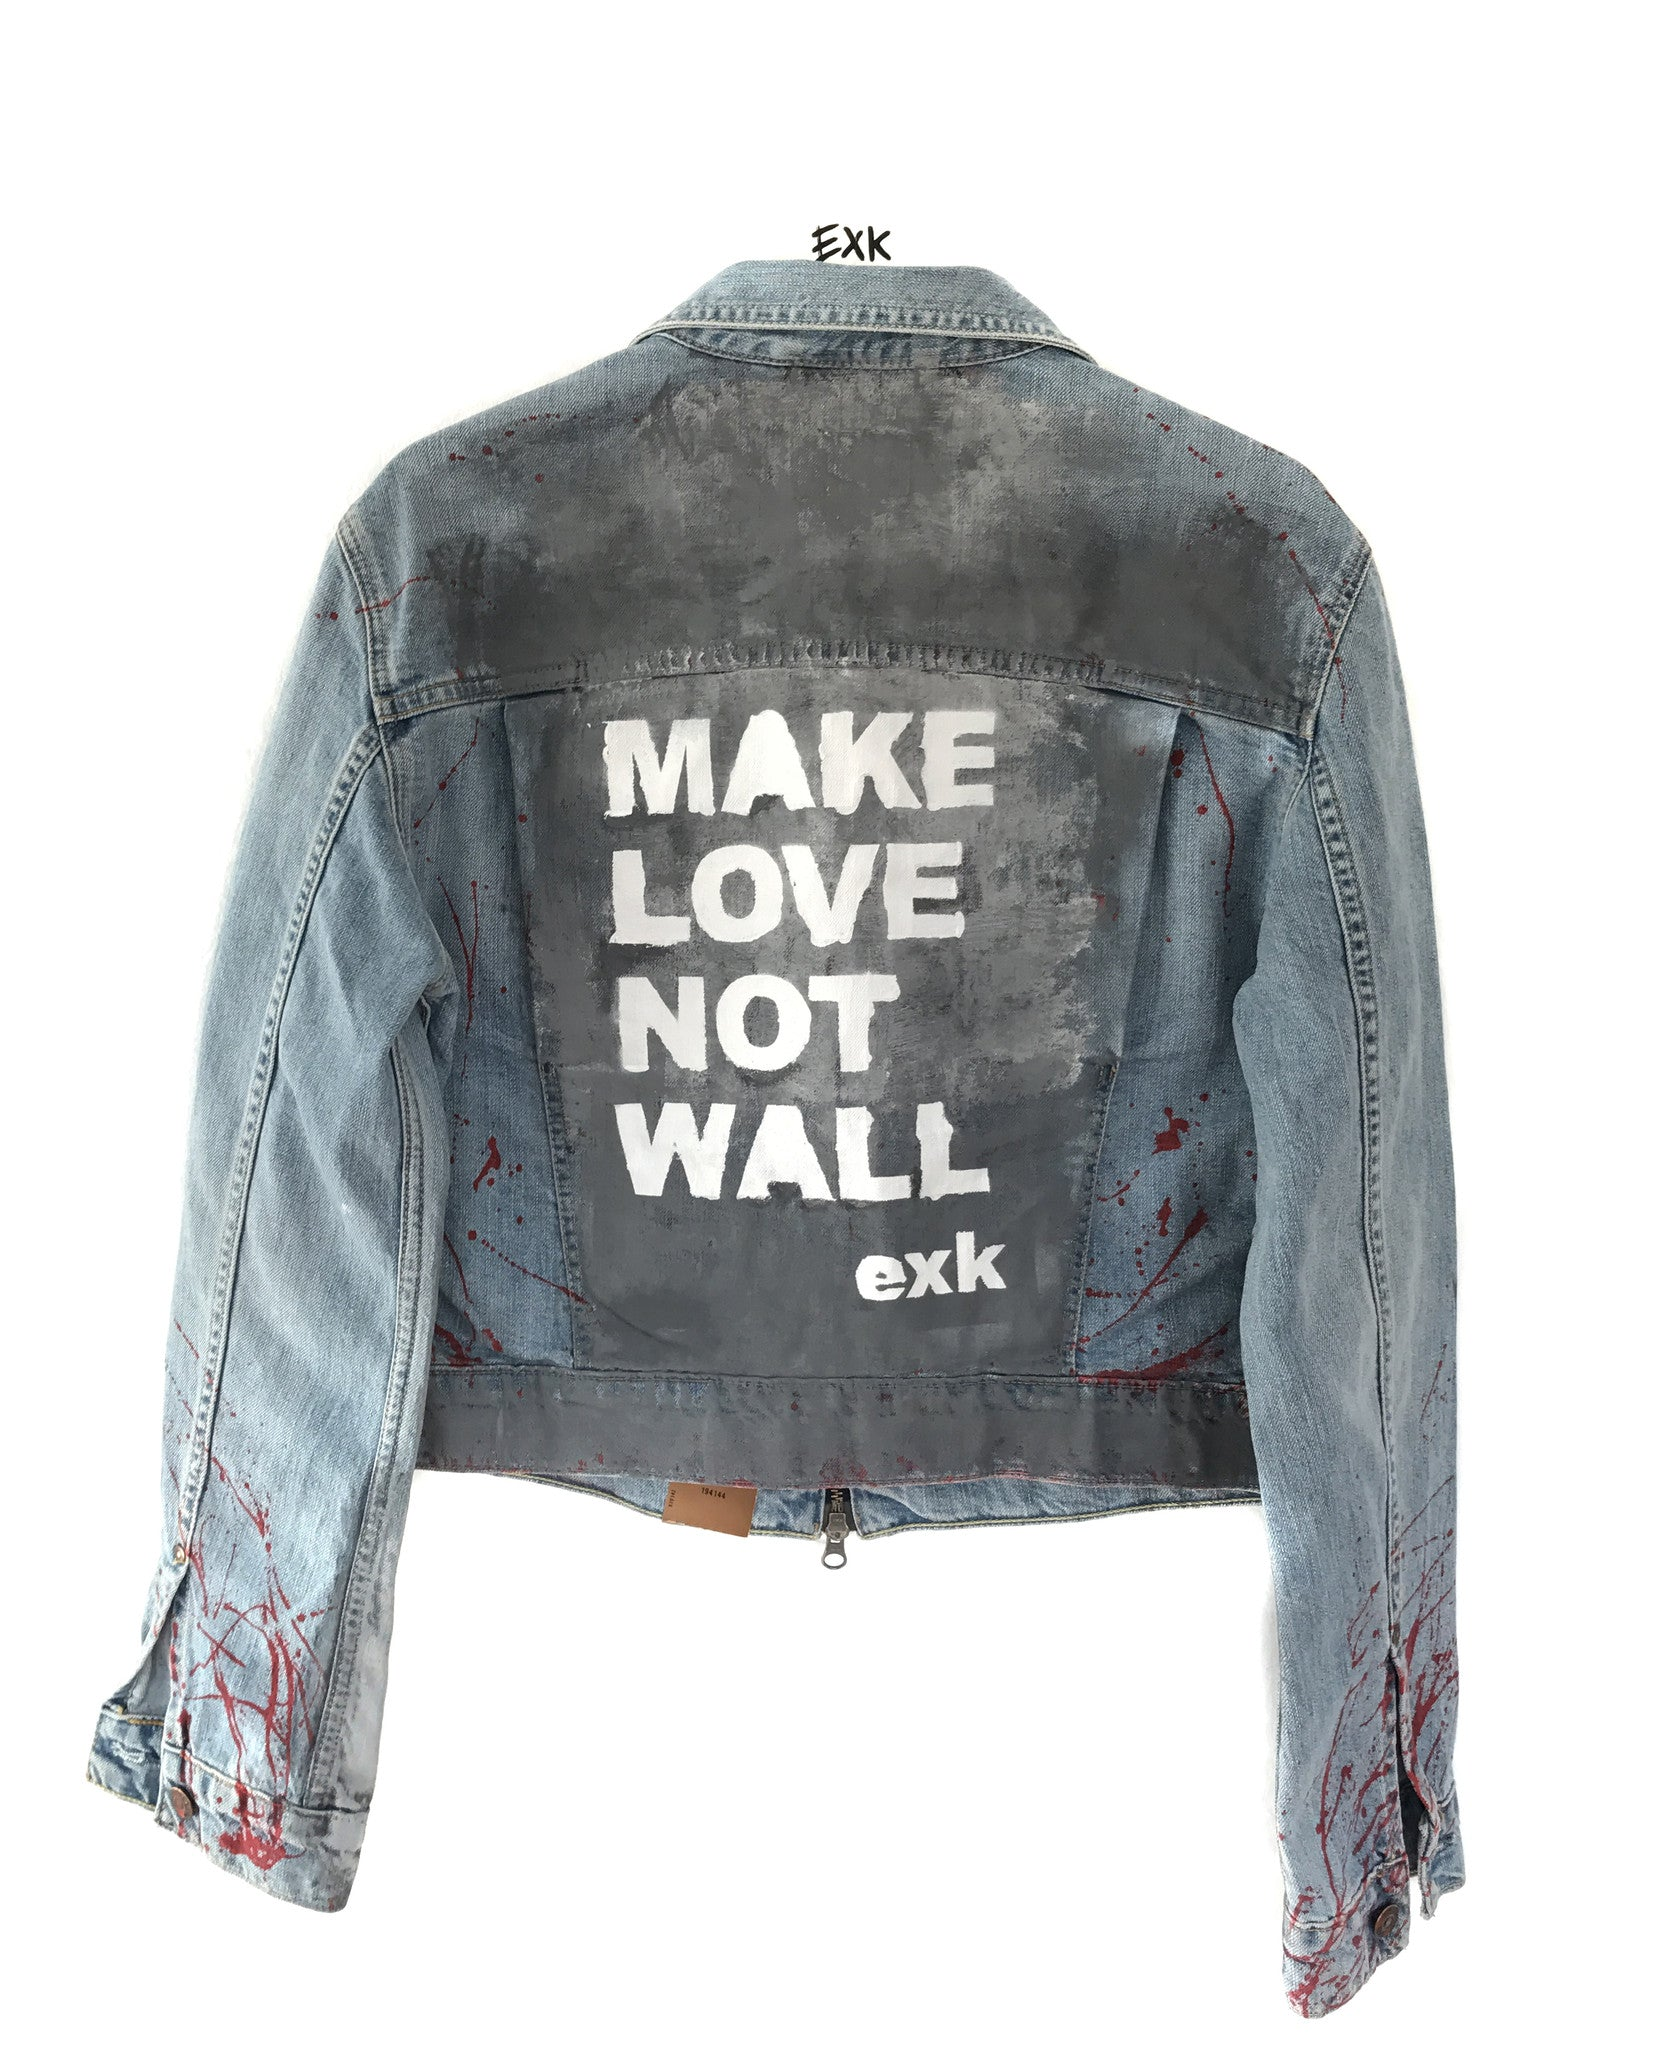 EXK1 LEVIS JACKET - Make Love Not Wall